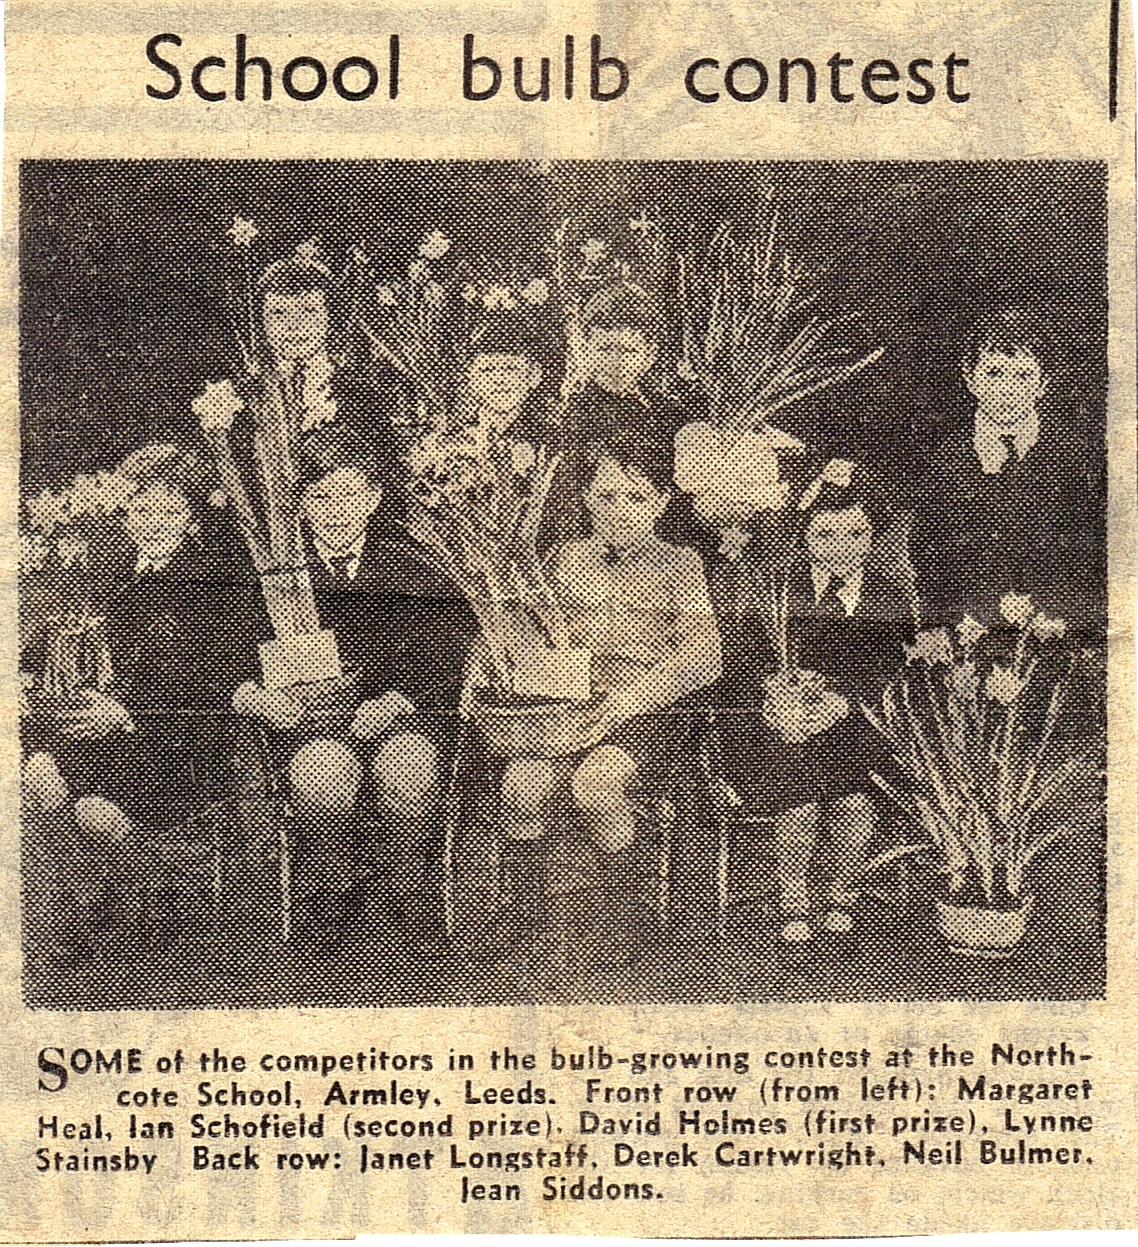 Armley, School bulb contest.JPG